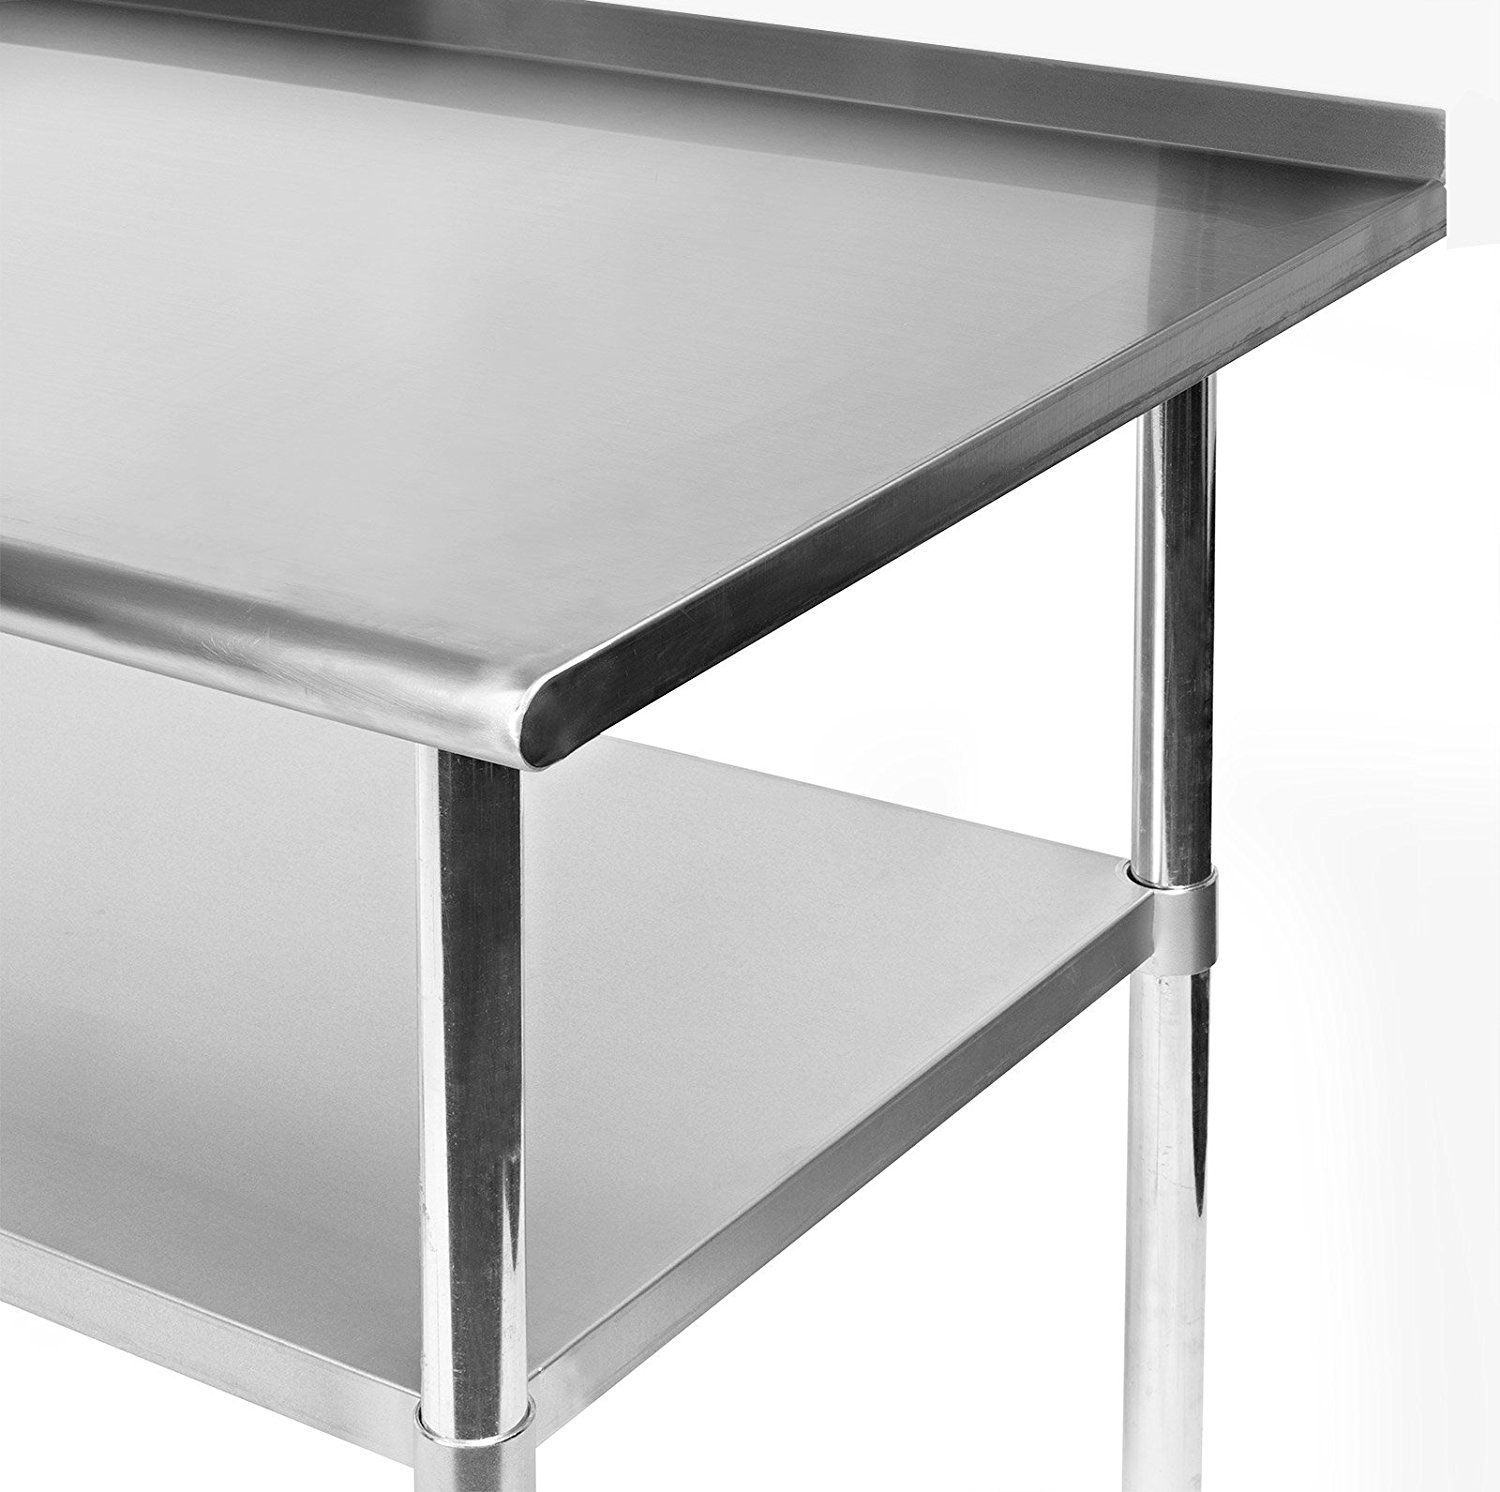 Stainless Steel Kitchen Table That Looks Luxurious And Beautiful To Put In  The Kitchen